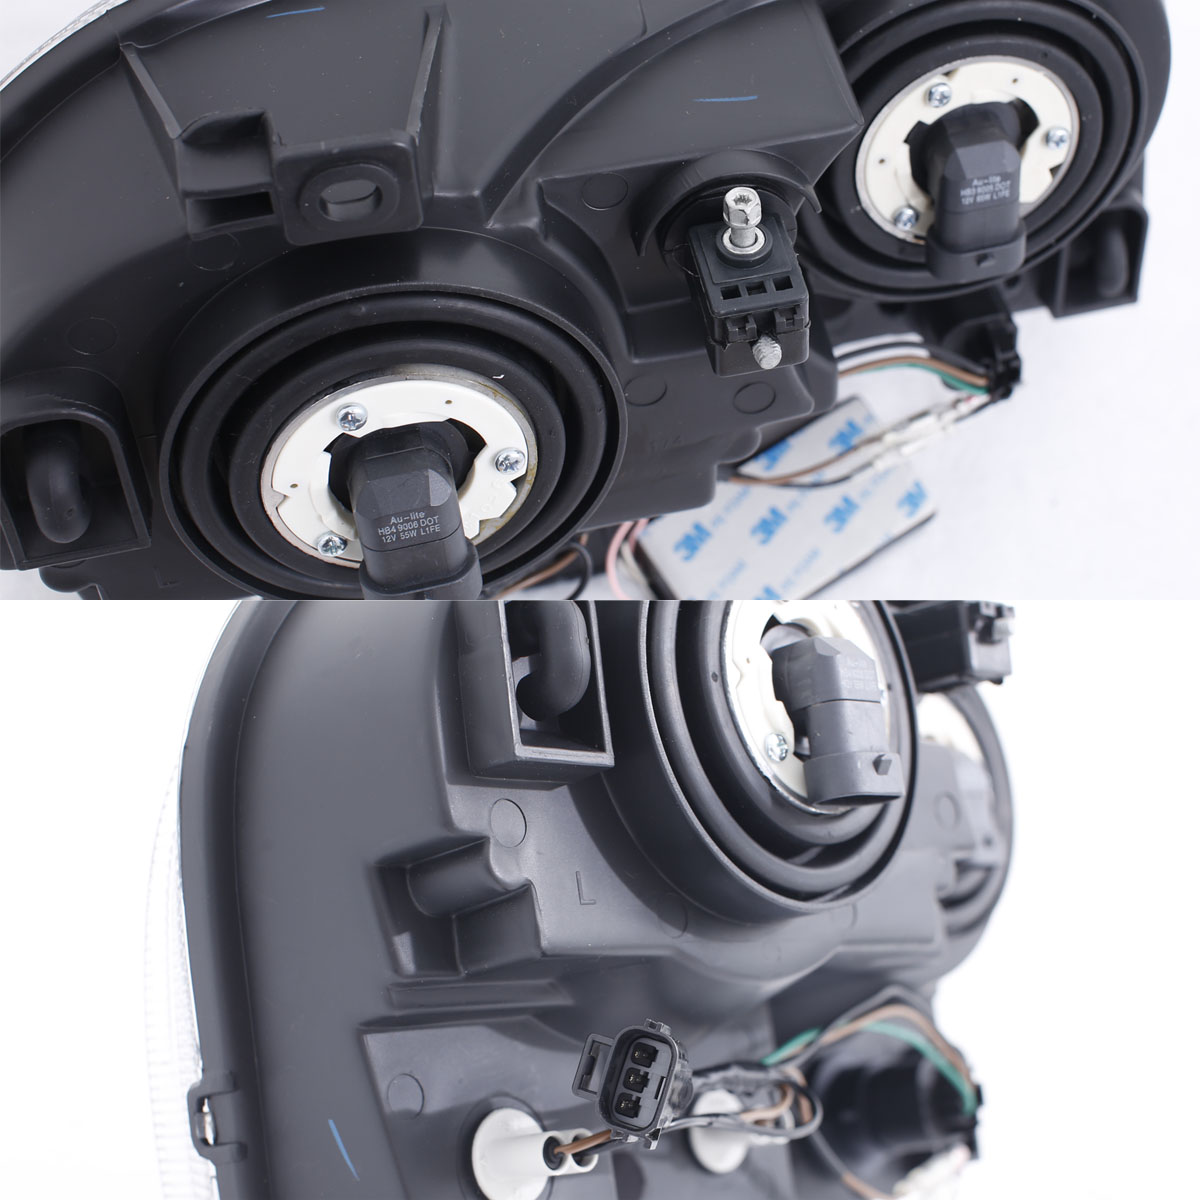 Black 2005 2006 2007 2008 2009 2010 Chrysler 300c: [Dual CCFL Halo] 2005 2006 2007 2008 2009 2010 Chrysler